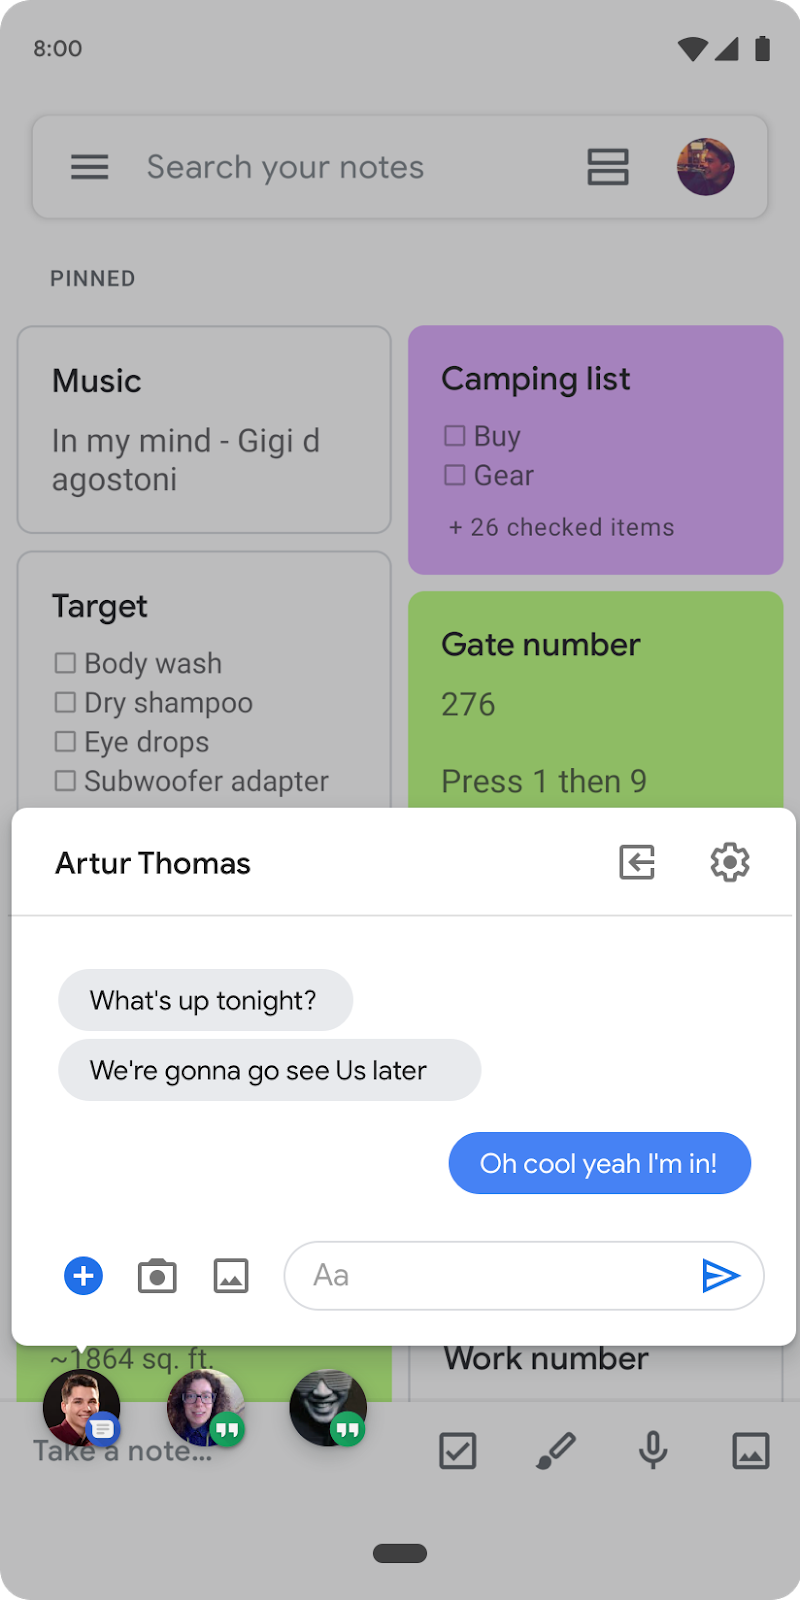 Chat Bubbles in Android 10 Beta 2 - Image Credits: <a href='https://android-developers.googleblog.com/2019/04/android-q-beta-2-update.html' class='bbc_url' title='External link' rel='nofollow external'></span>https://android-deve...a-2-update.html</a>